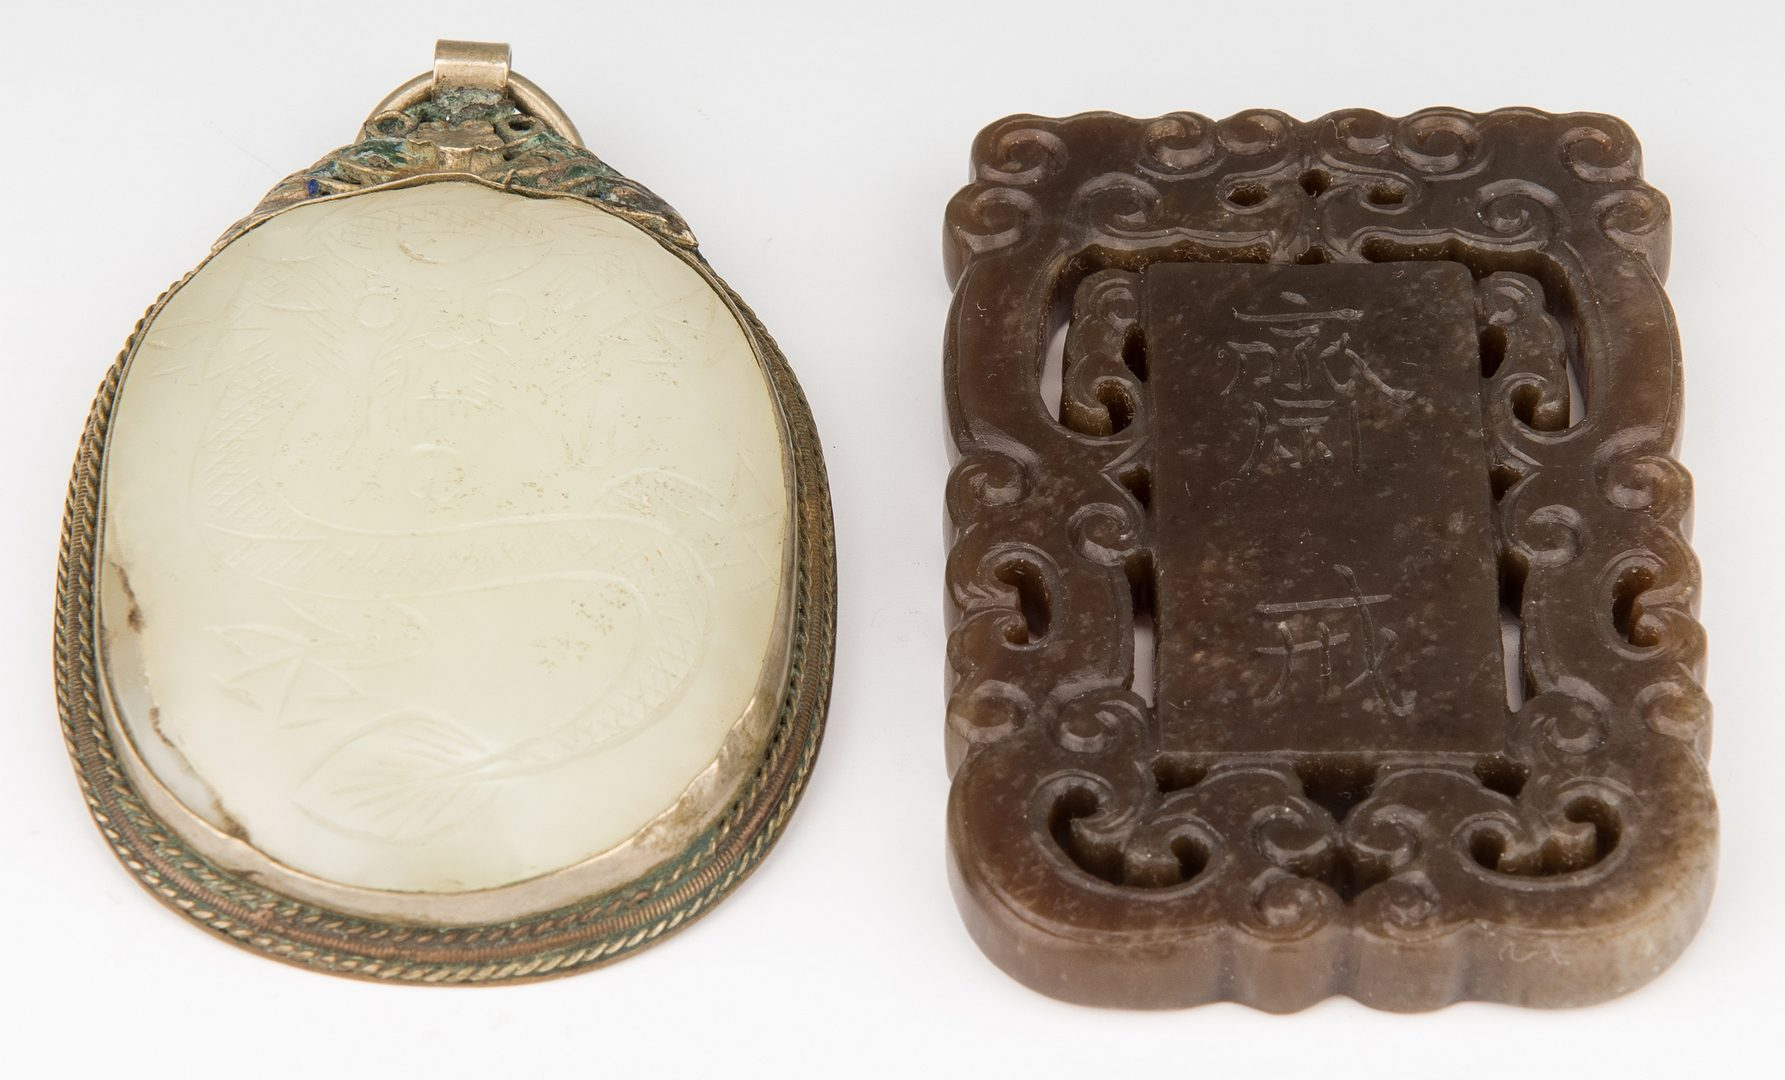 Lot 6: 3 Chinese Carved Jade Pcs, inc. Pendant